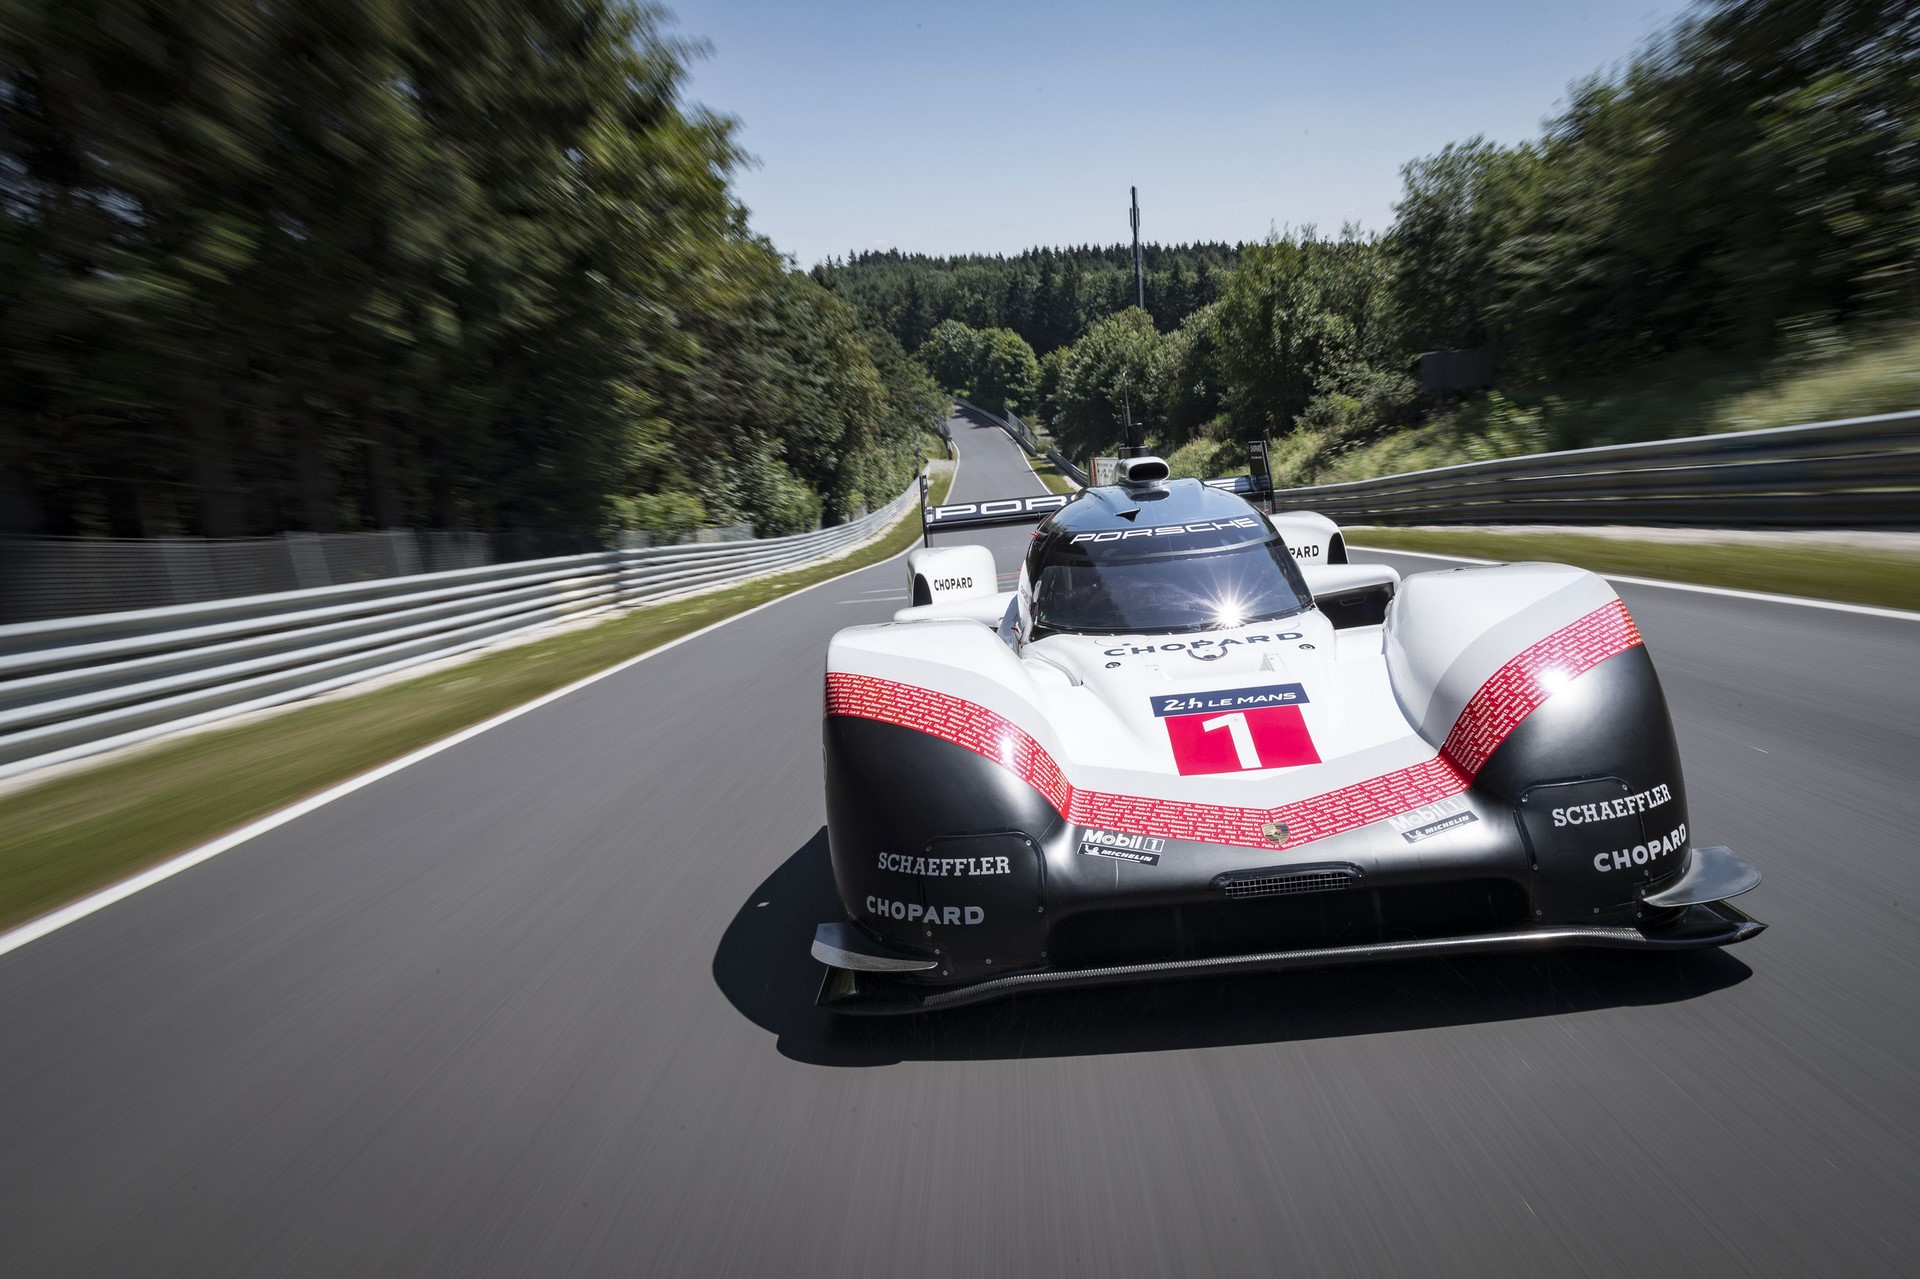 porsche-919-ring-lap-record-002-1